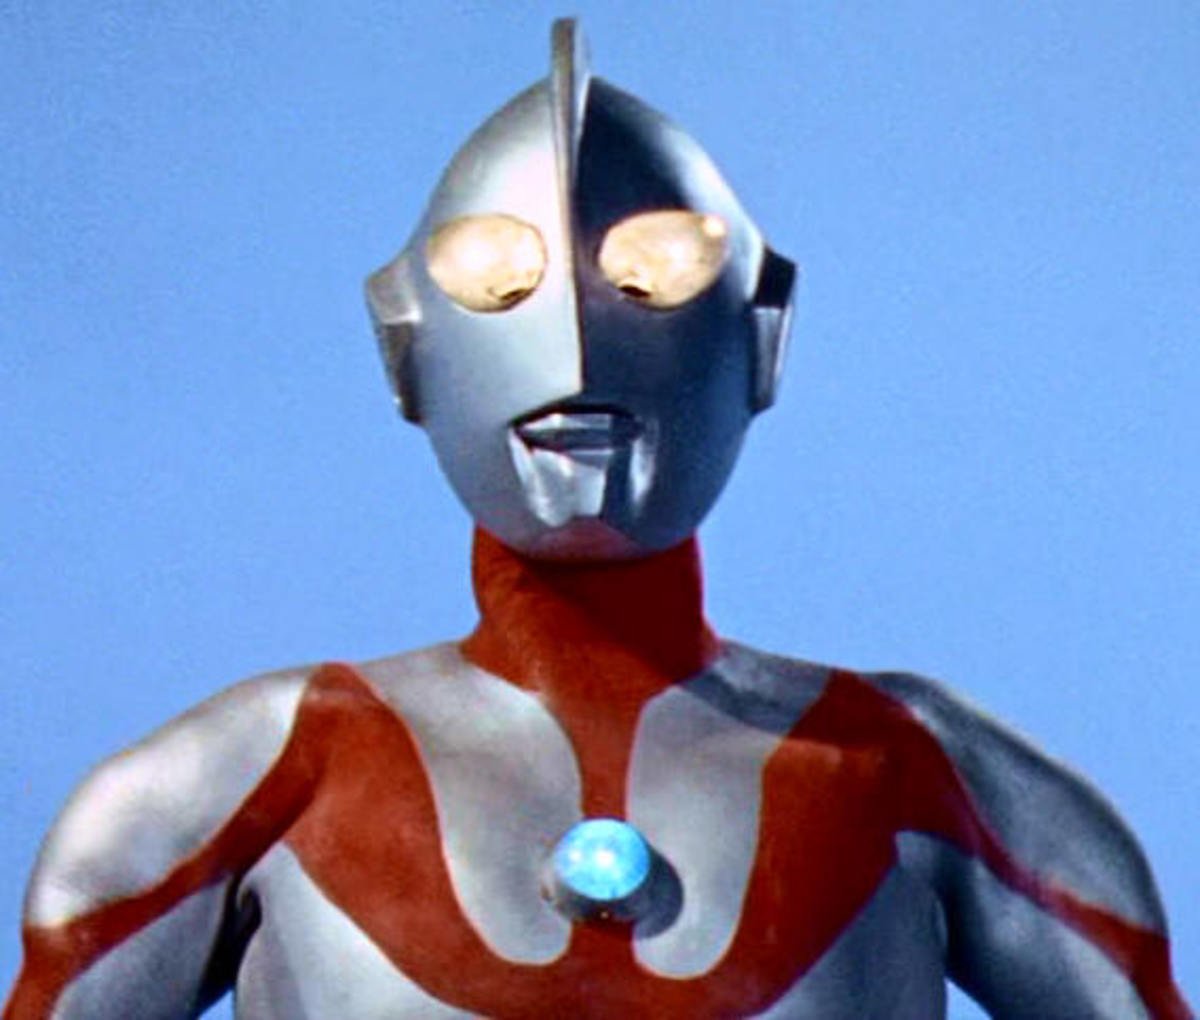 The original Ultraman